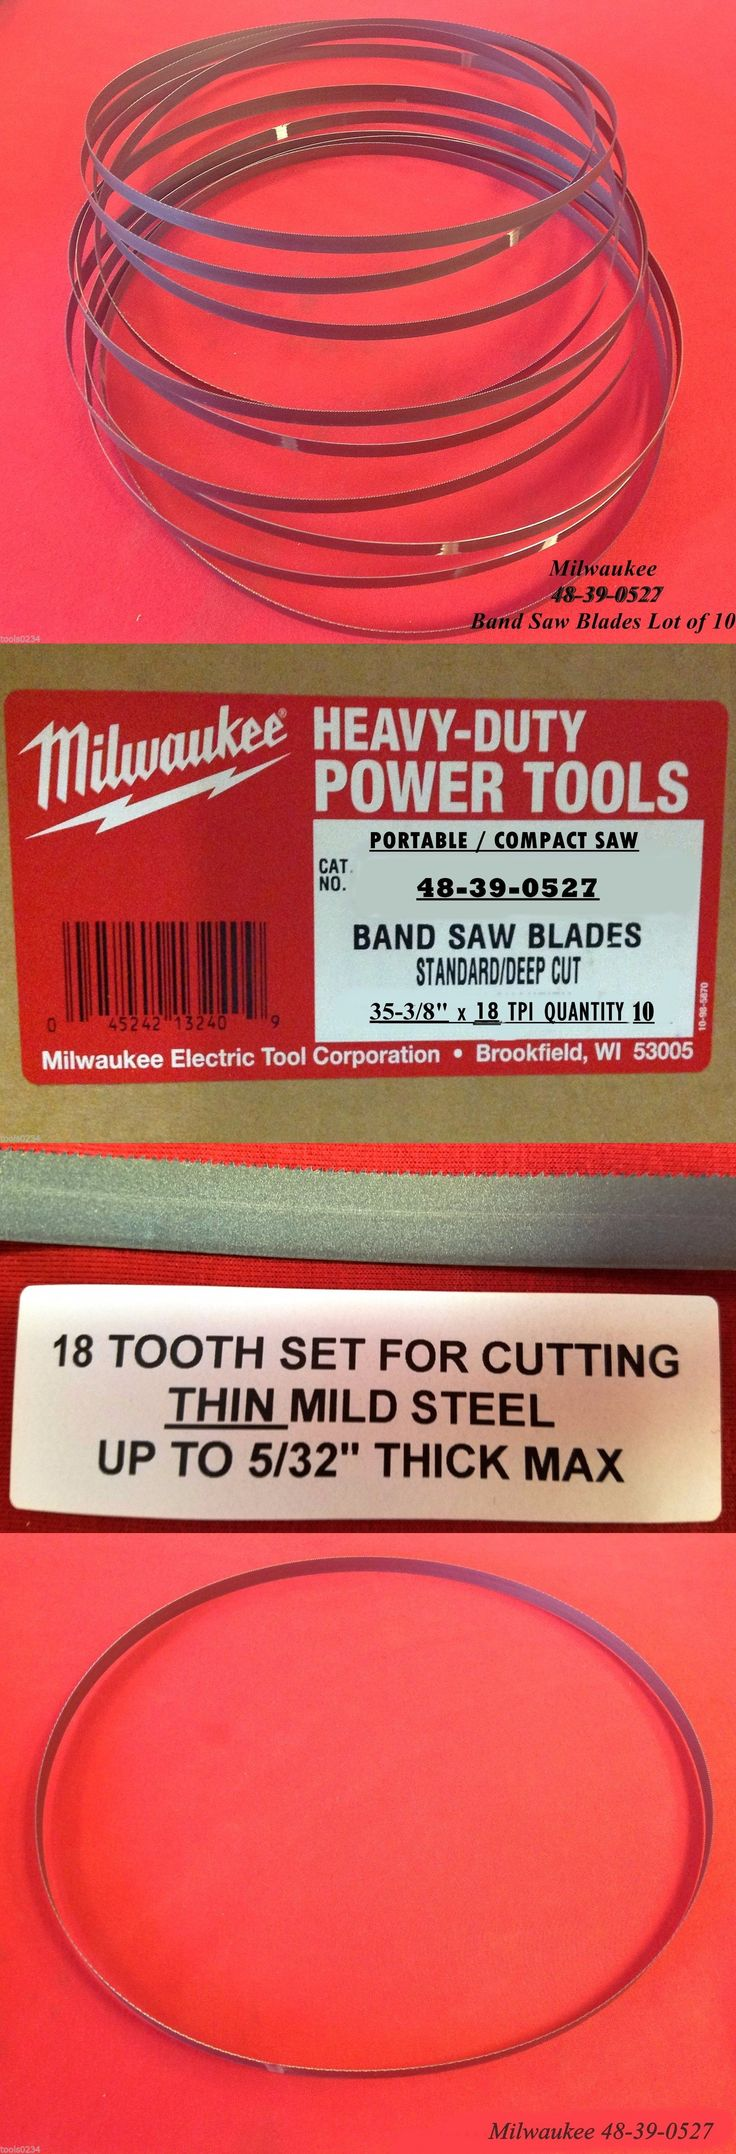 Band Saws 177016: Milwaukee 48-39-0527 35-3 8 18 Tpi Compact Band Saw Blade Lot Of 10 Fits 2629 -> BUY IT NOW ONLY: $45.75 on eBay!